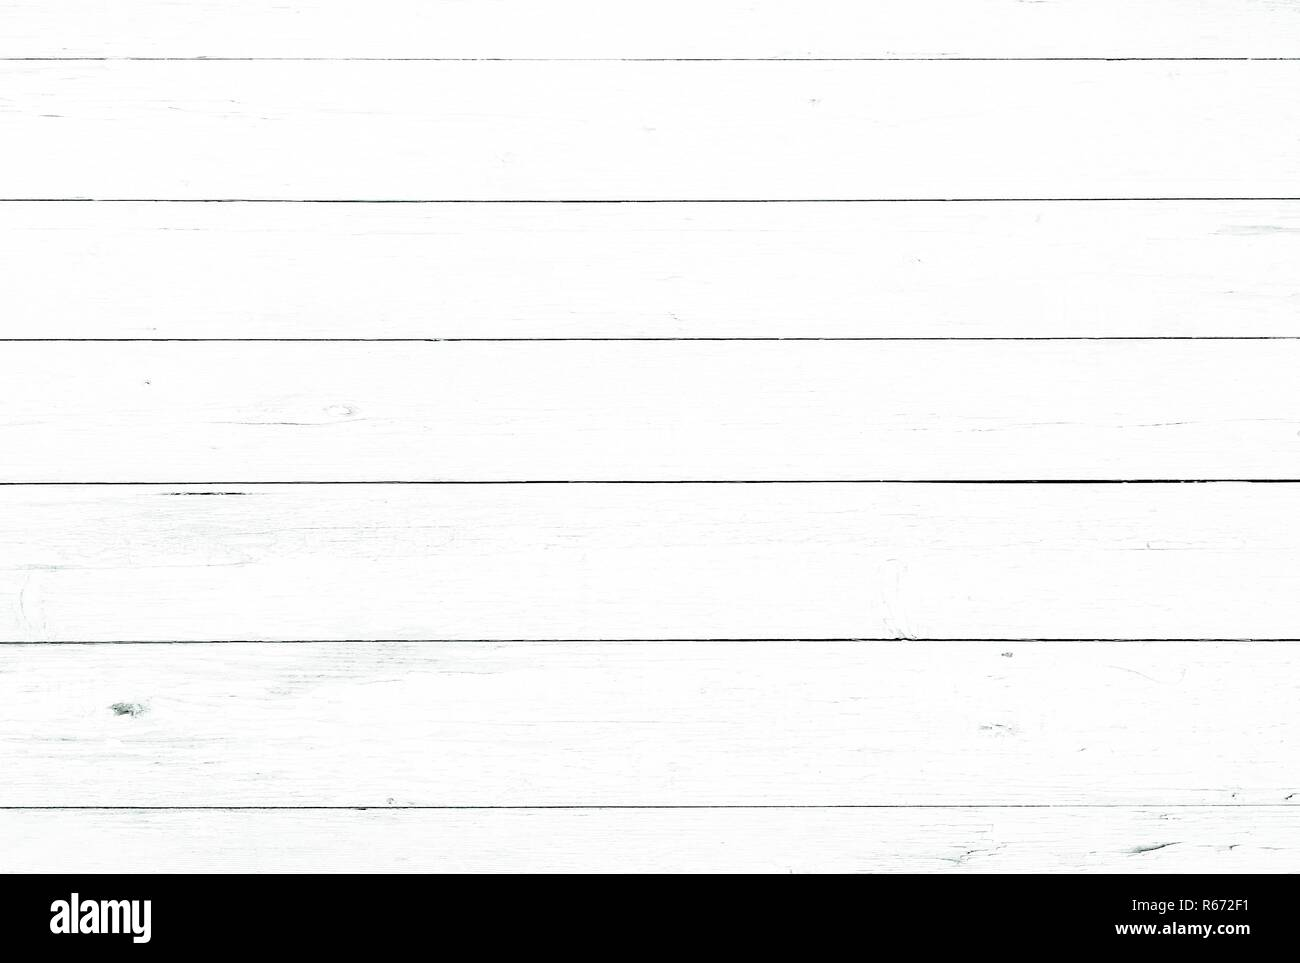 Wood texture background, wood planks. Grunge wood, painted wooden wall pattern. - Stock Image